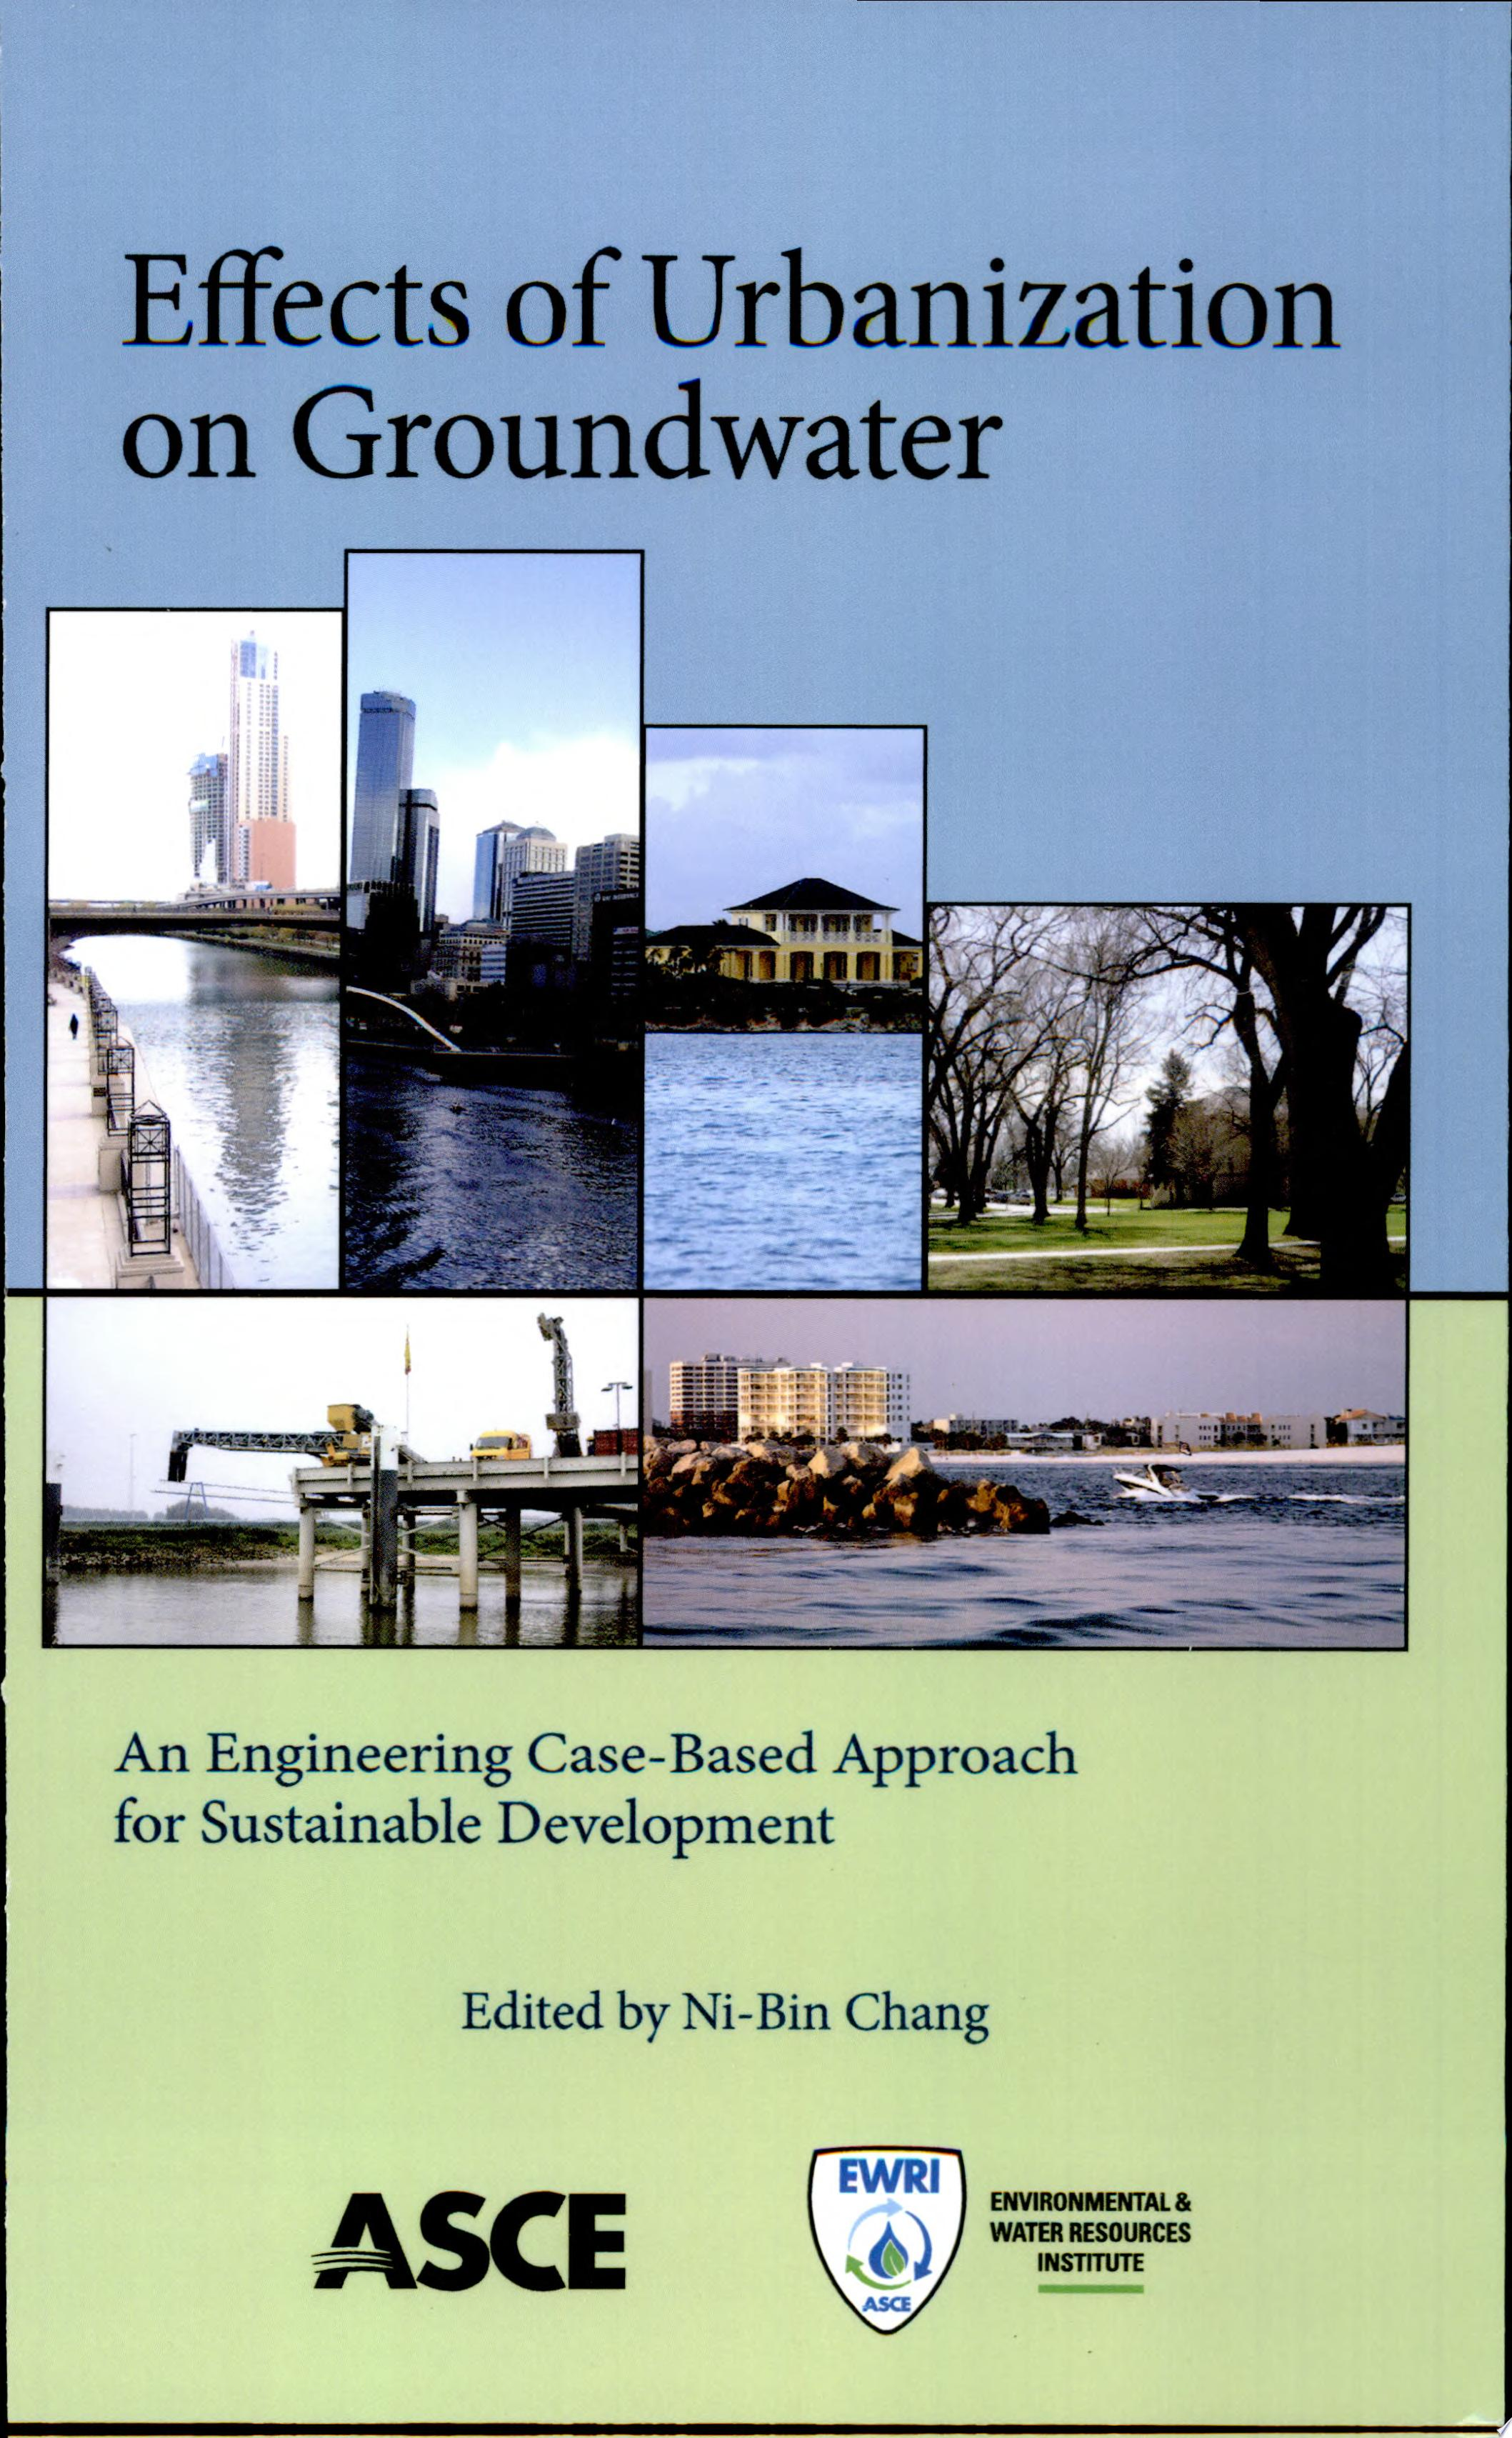 Effects of Urbanization on Groundwater